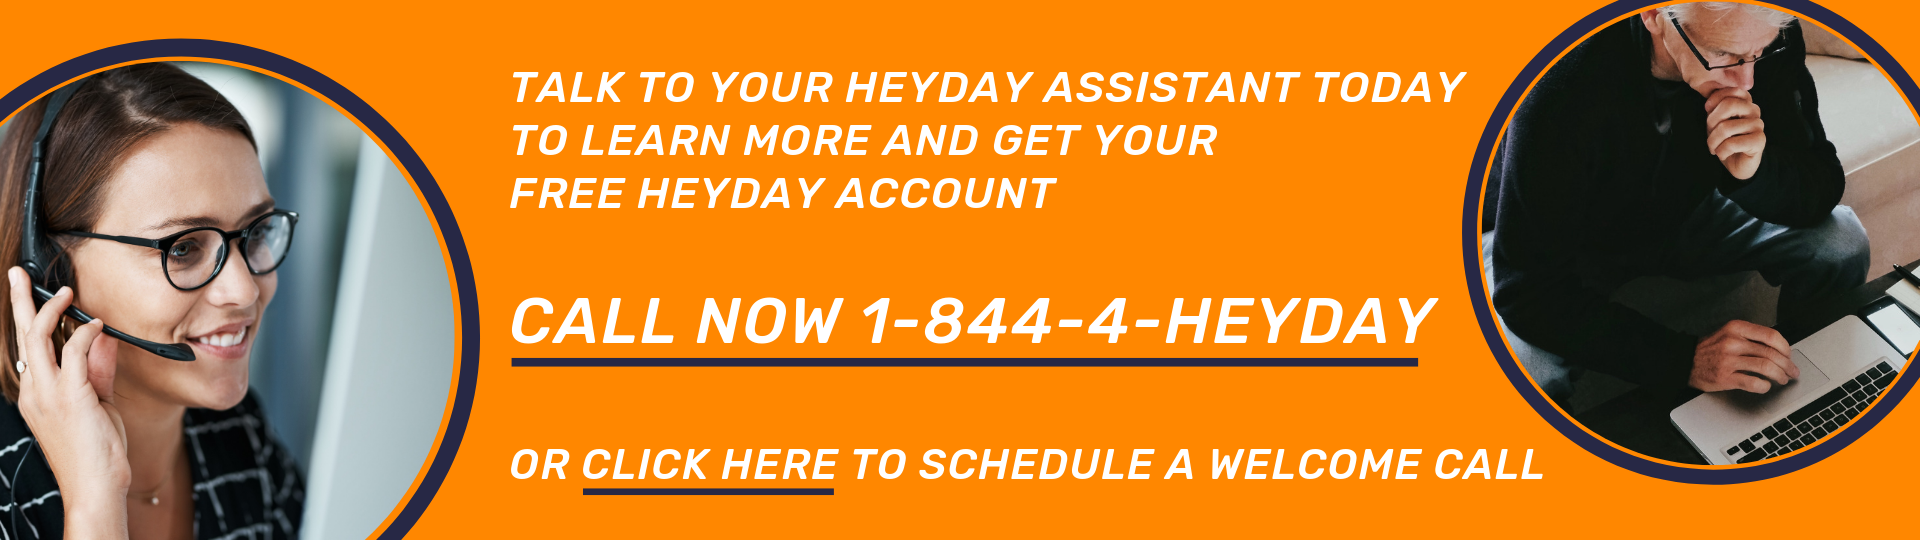 Call now or schedule a call with your Heyday Assistant